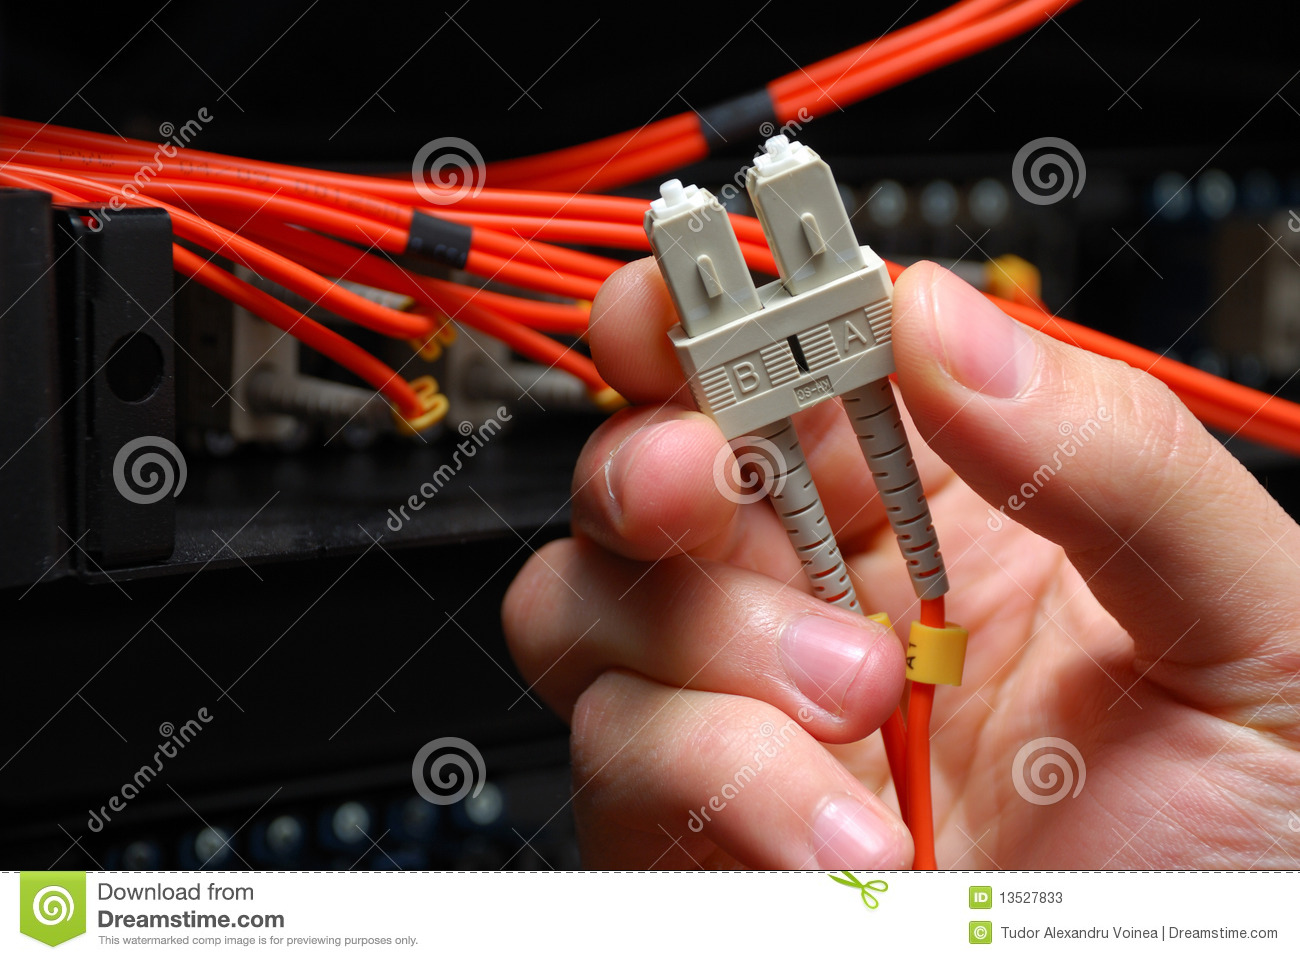 Optical fiber high speed data cable held in hand